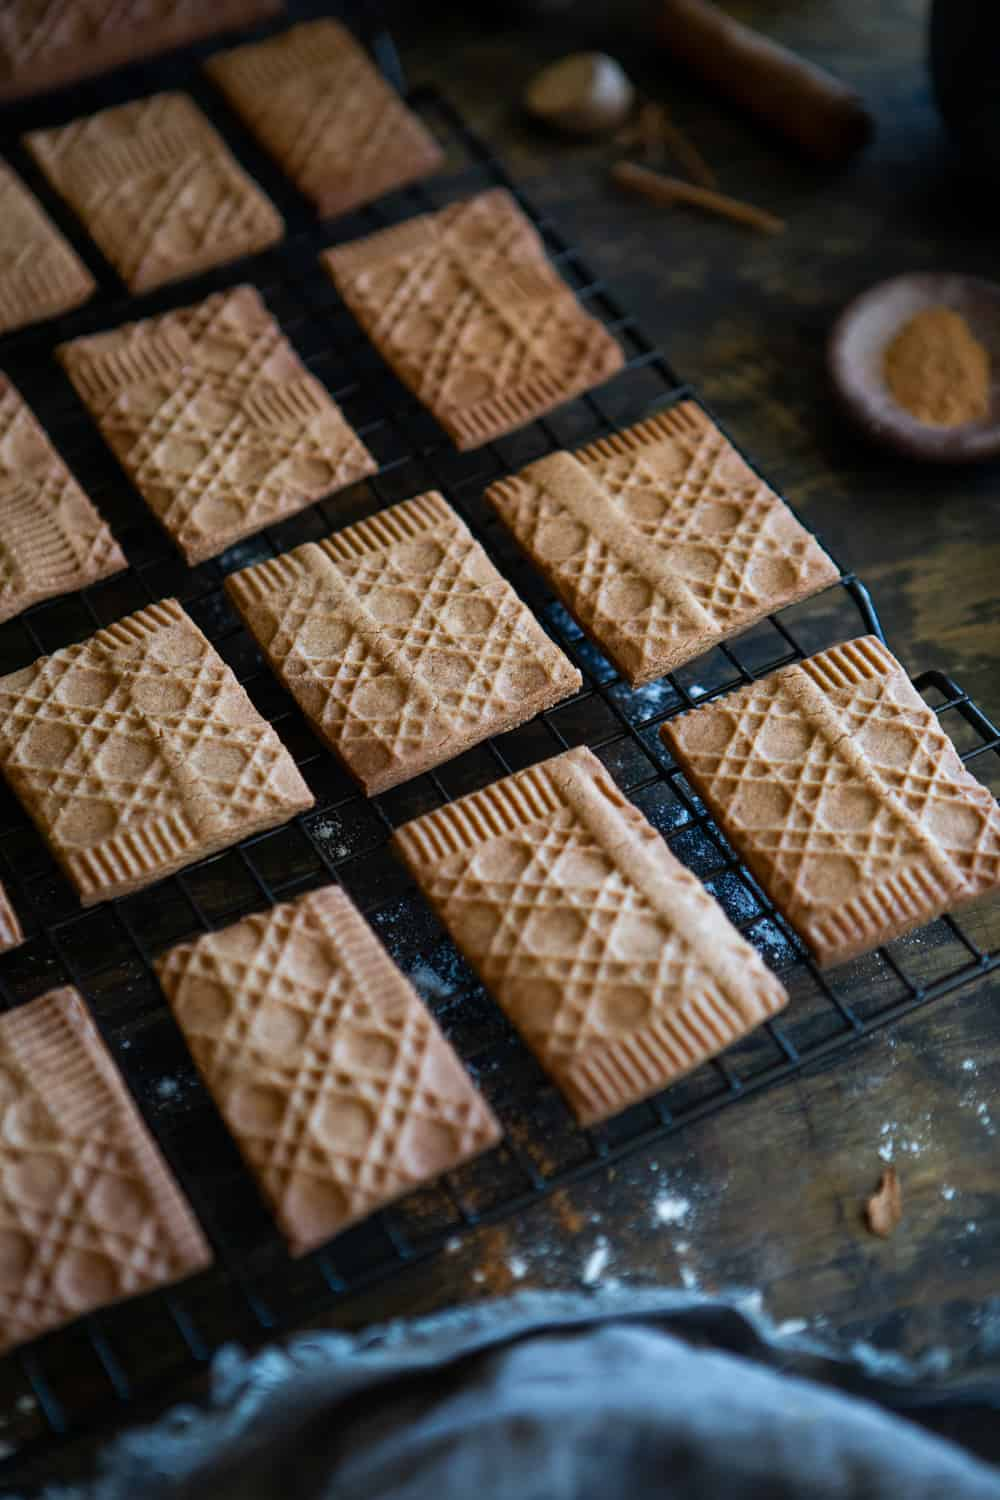 Dutch spiced biscuits